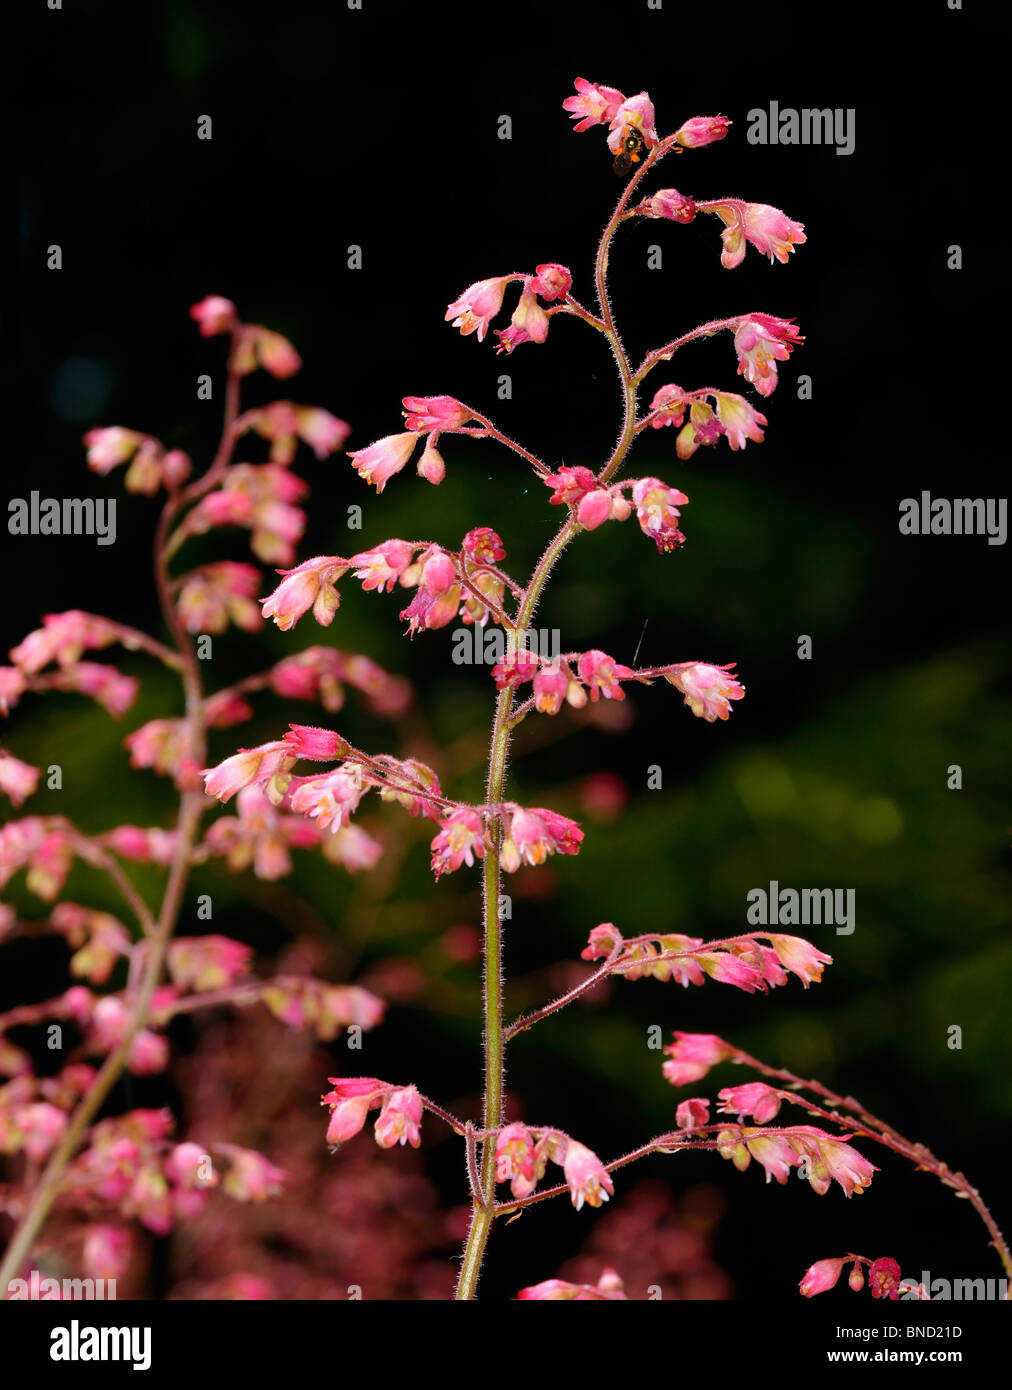 Stalk of pink Heuchera Coral Bells flowers in a sunny garden against a shade background Toronto - Stock Image